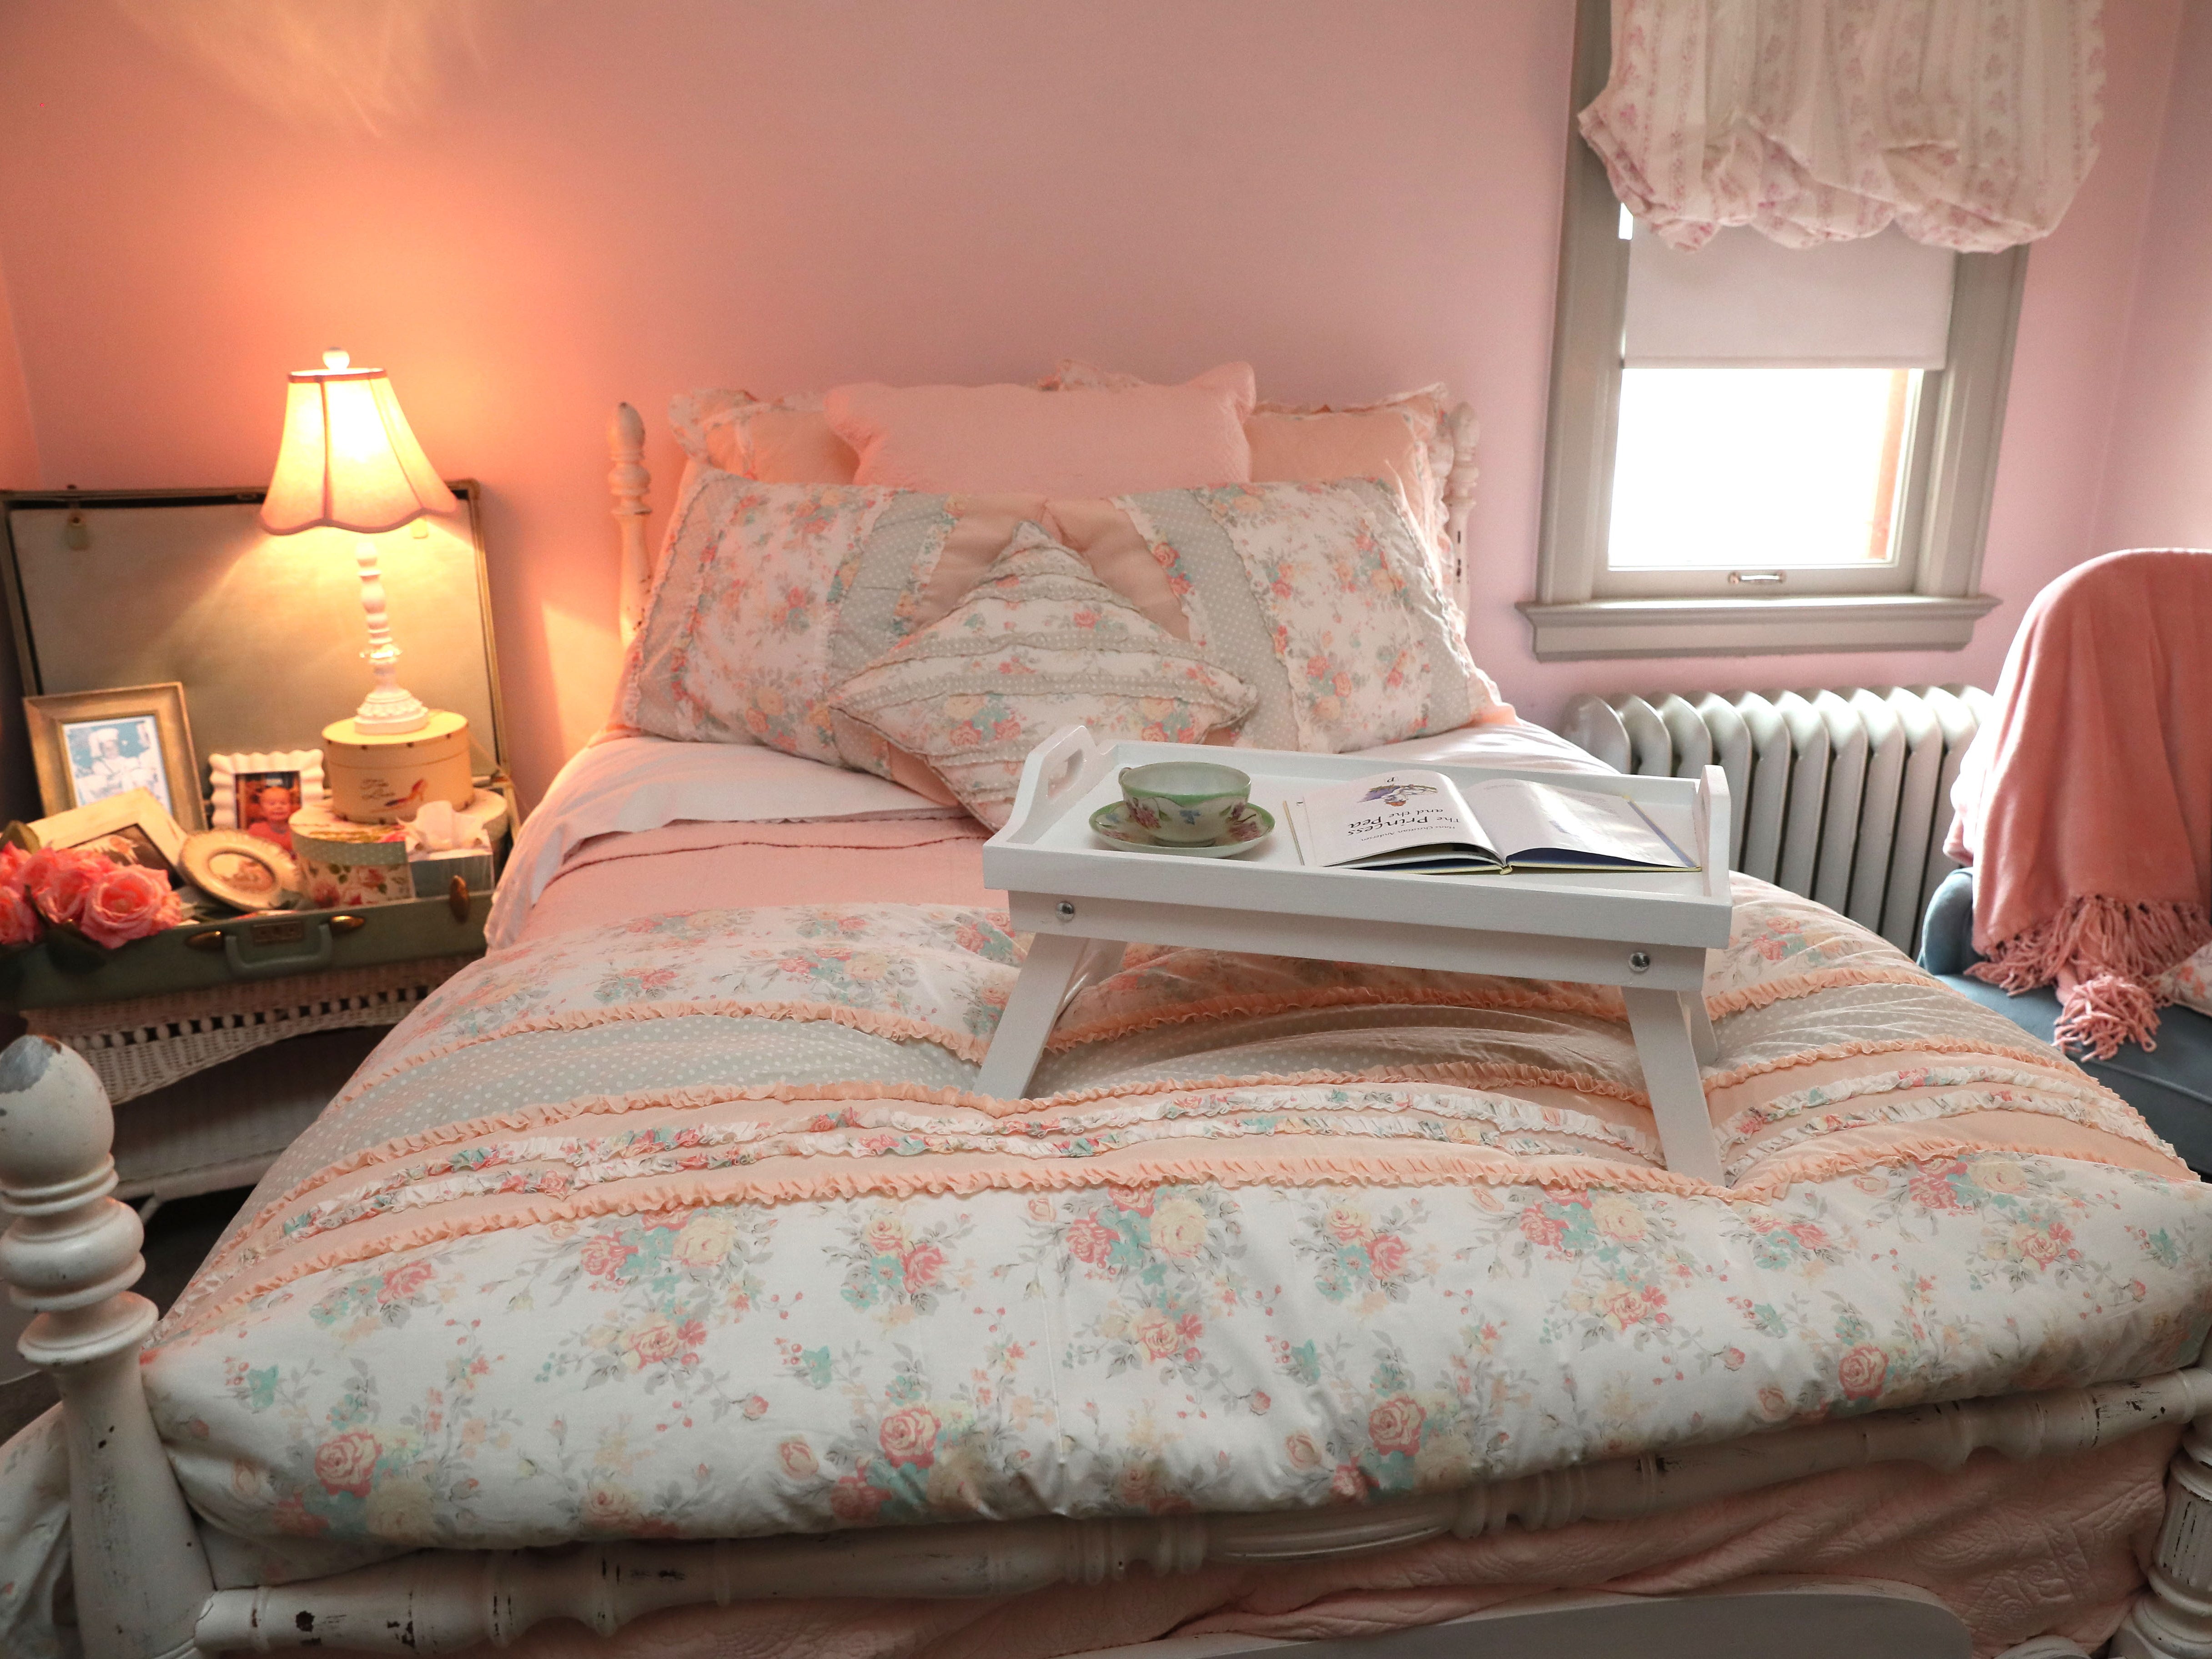 Zoe Krause calls this guest bedroom her mom's room partly because it's done in the peachy-pink colors her mother loves.